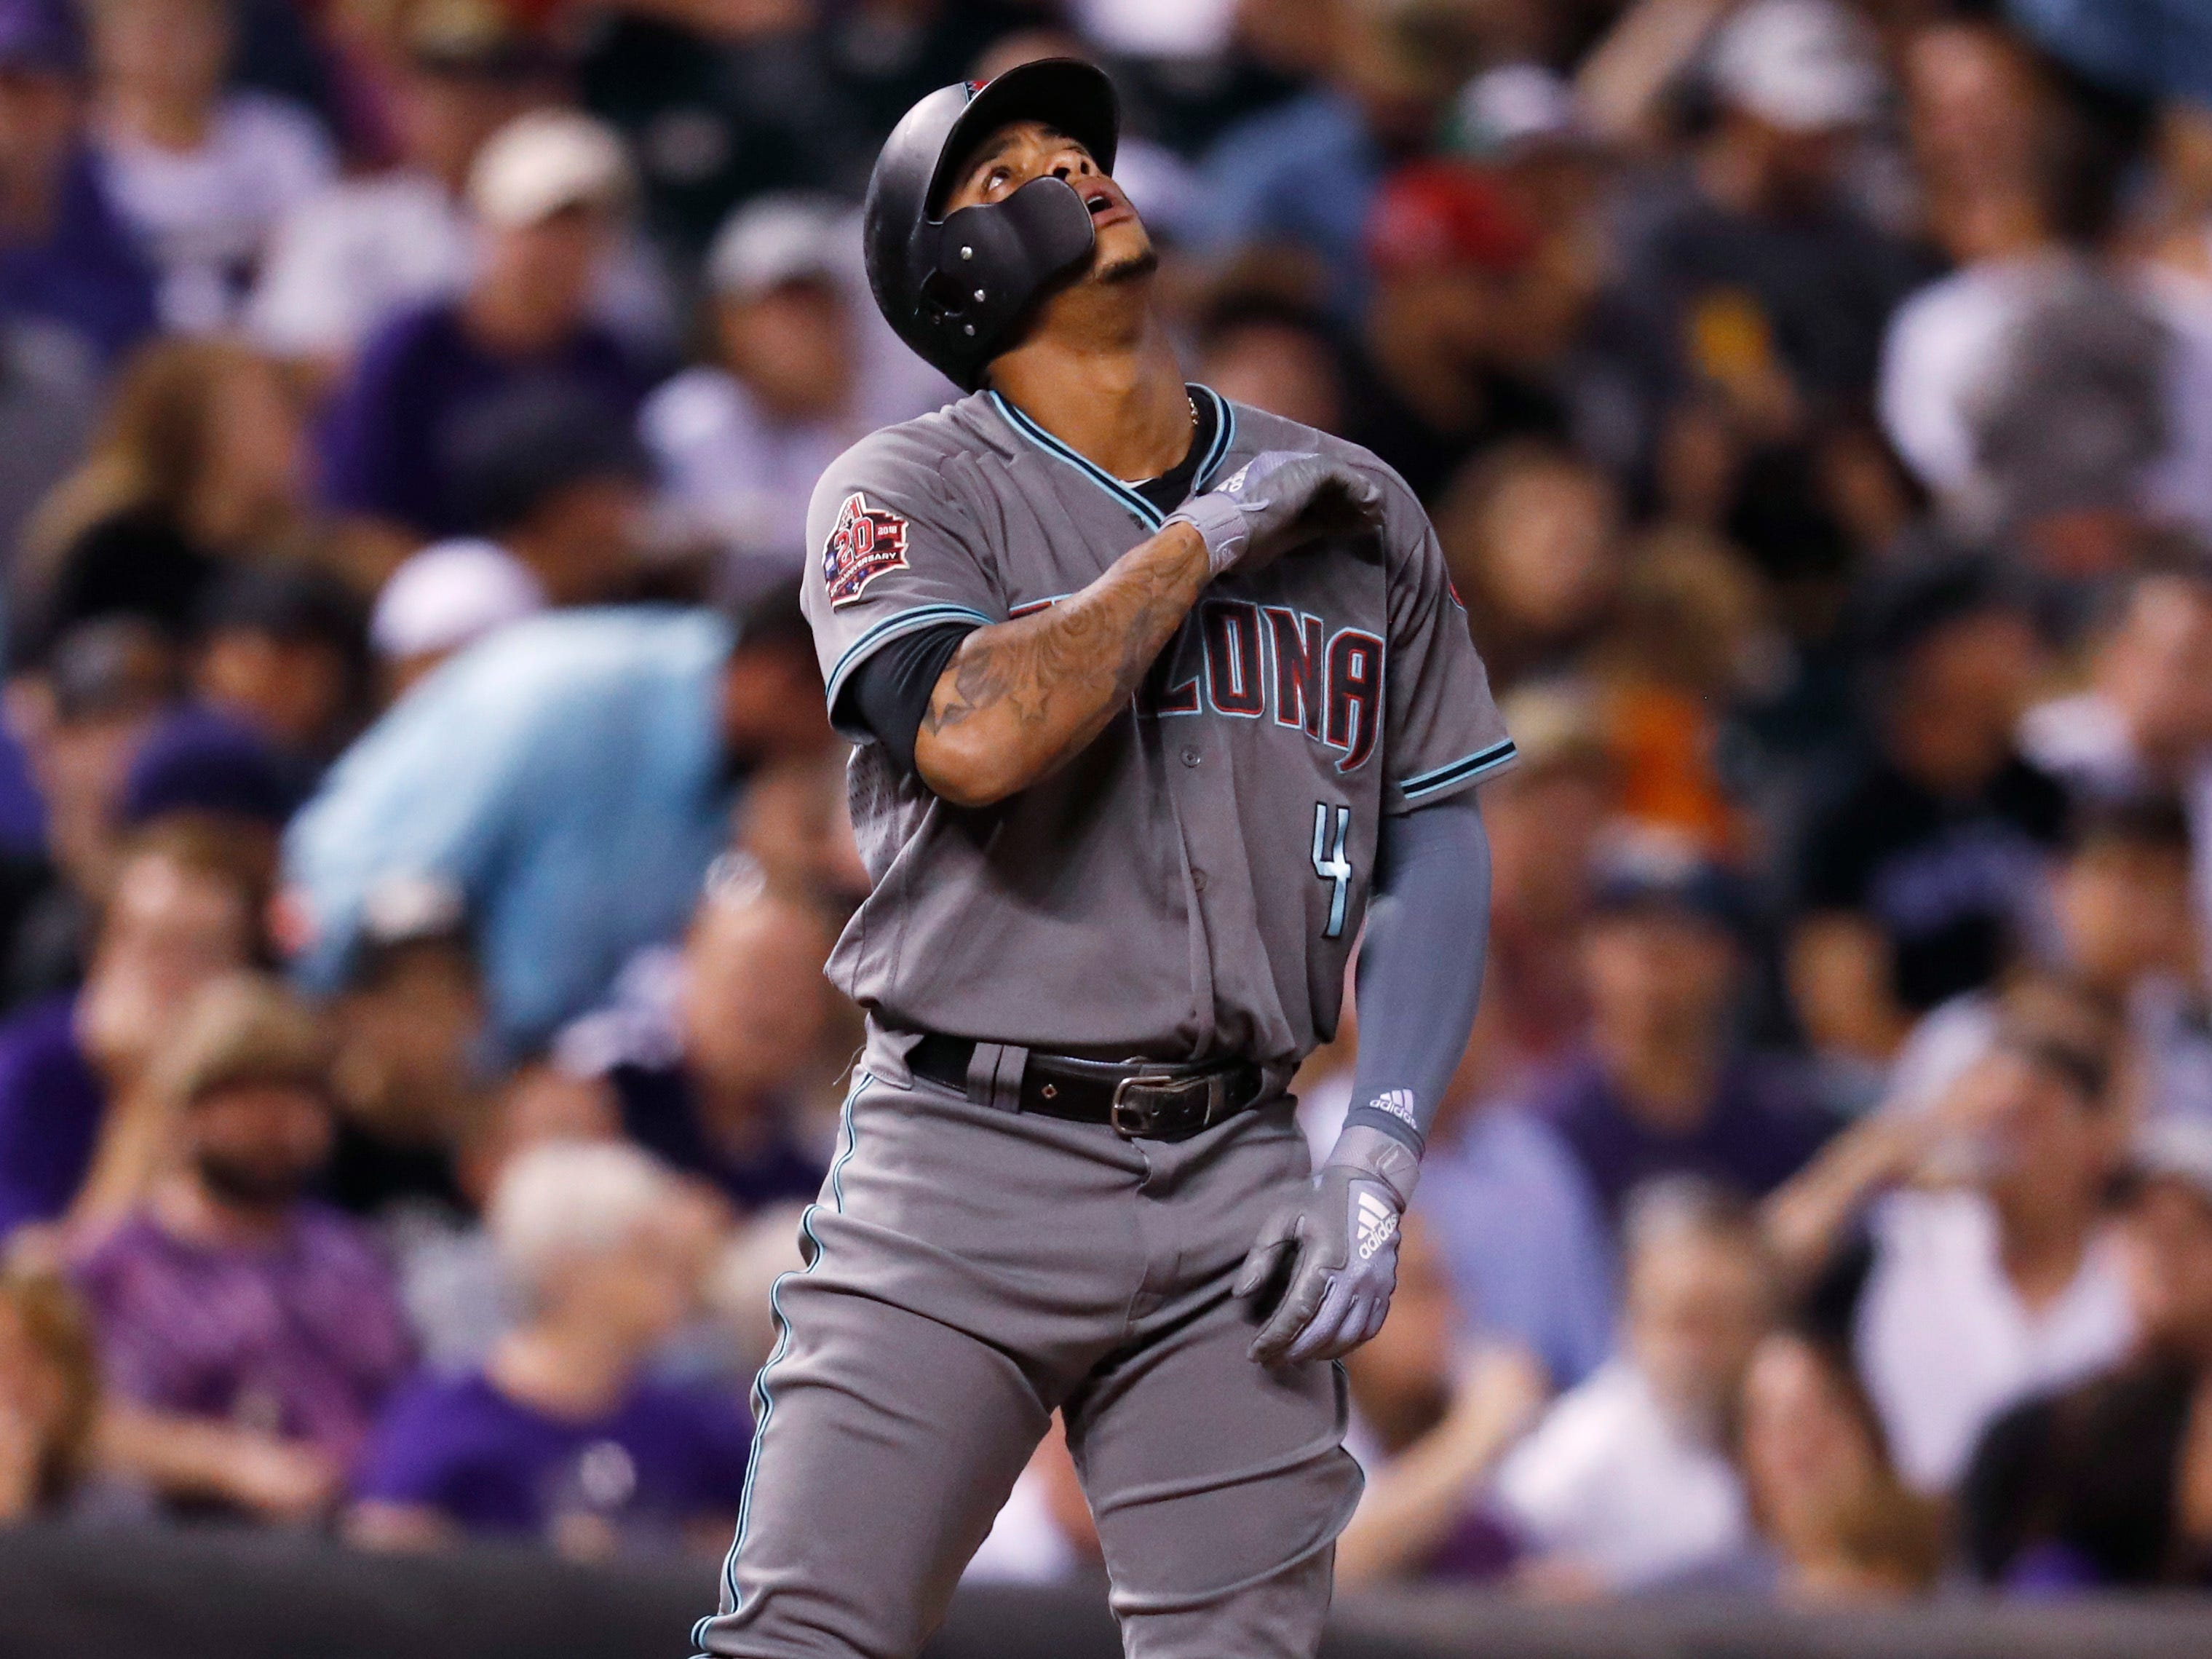 Arizona Diamondbacks' Ketel Marte gestures after hitting a triple to drive in two runs off Colorado Rockies starting pitcher Antonio Senzatela in the sixth inning of a baseball game Tuesday, Sept. 11, 2018, in Denver.